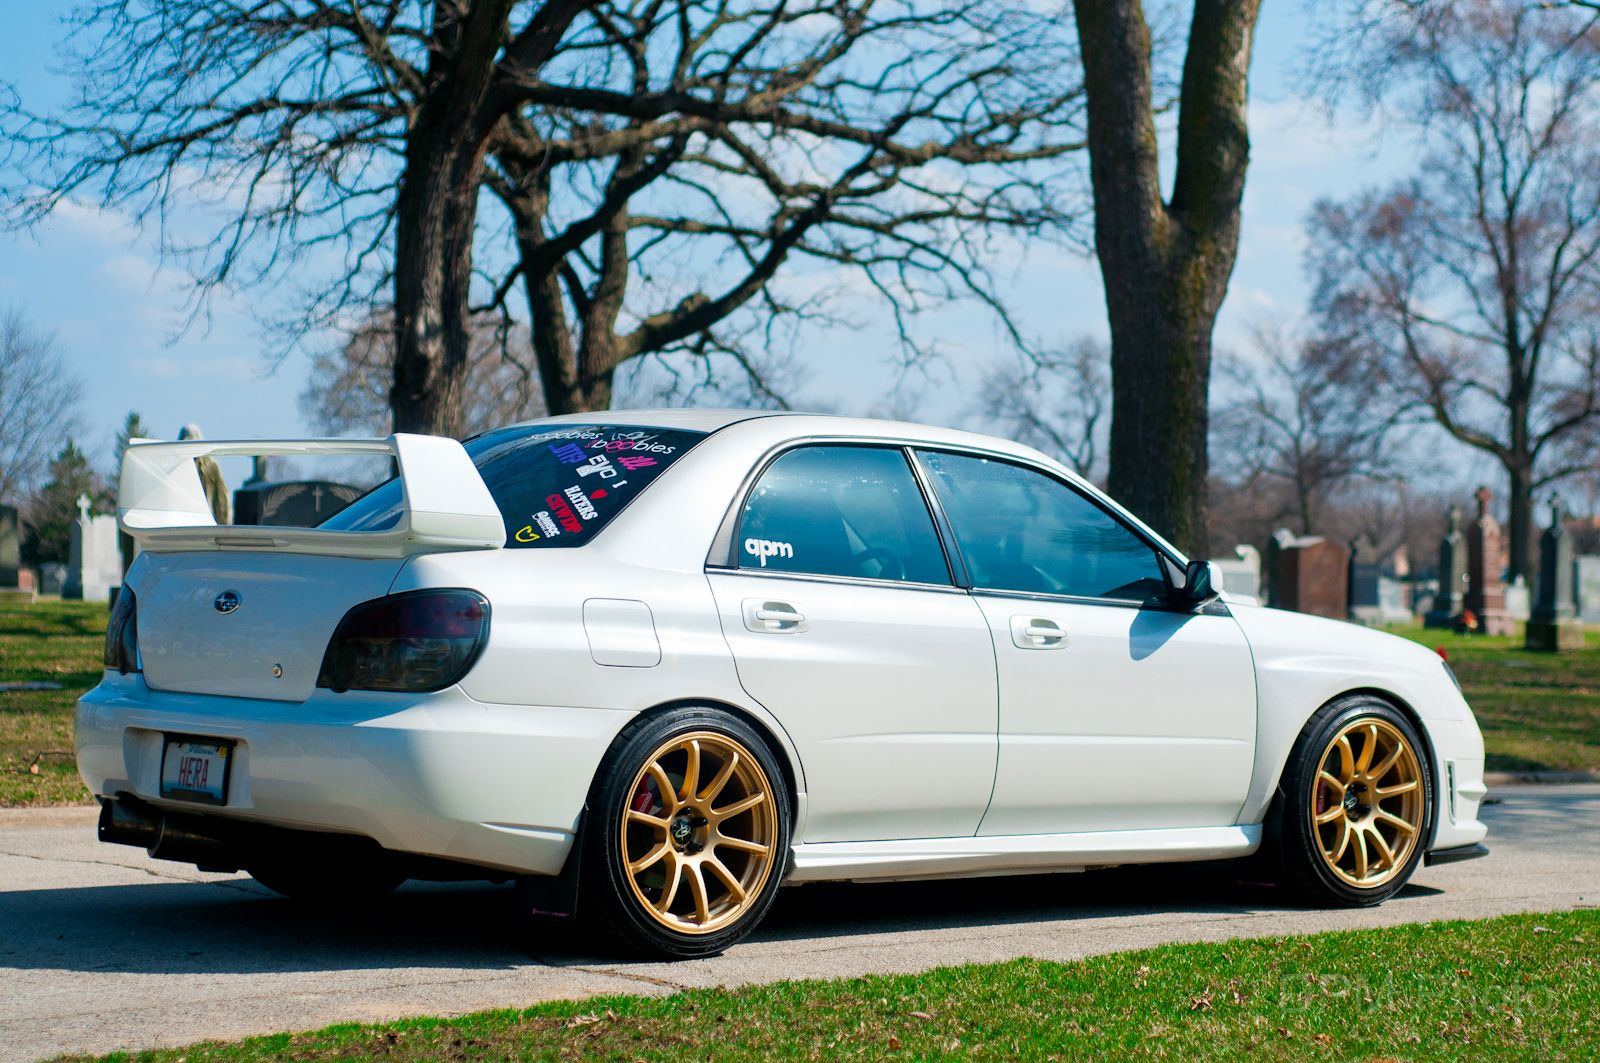 2007 Subaru Impreza Wrx For Sale Oak Lawn Illinois